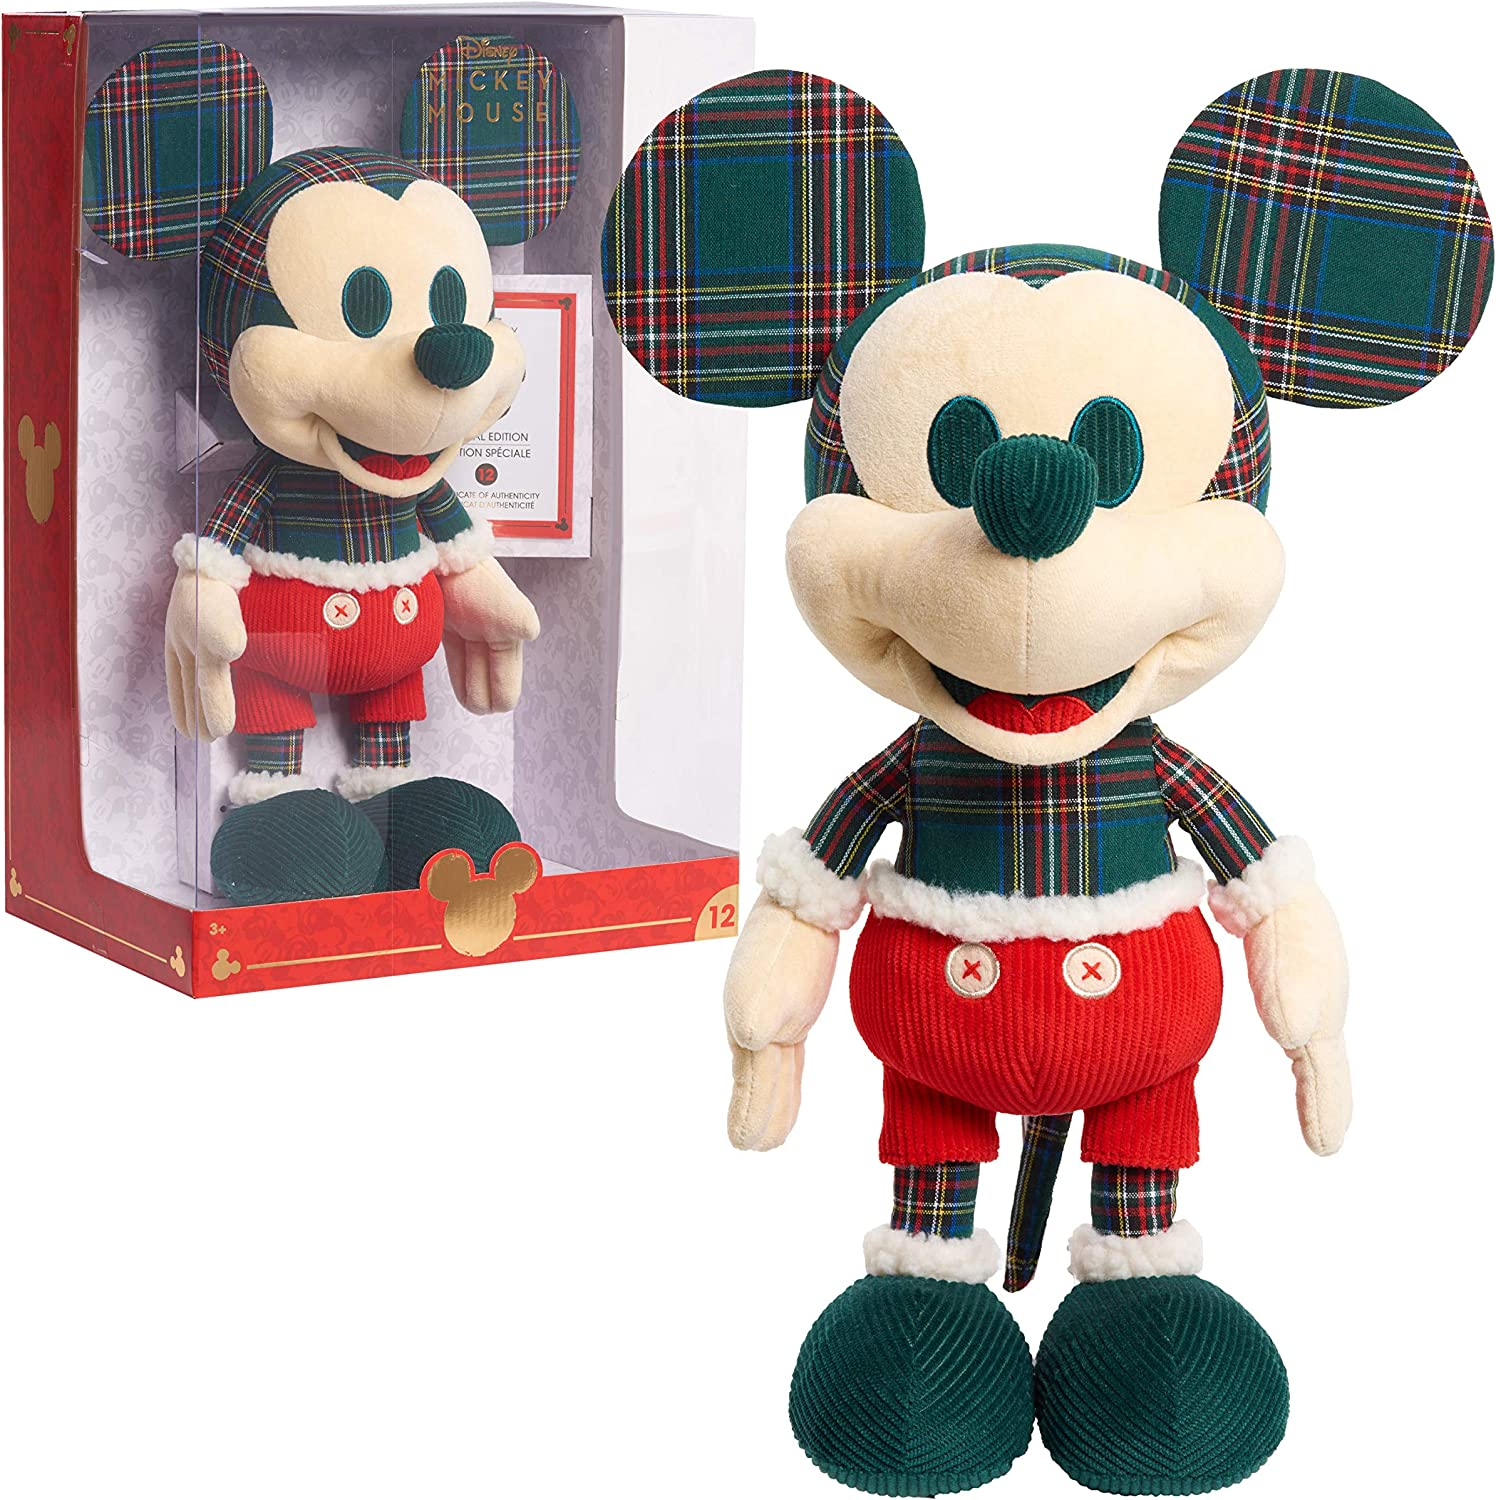 Disney Year of the Mouse Collector Plush, Holiday Spirit Mouse Mickey, Amazon Exclusive